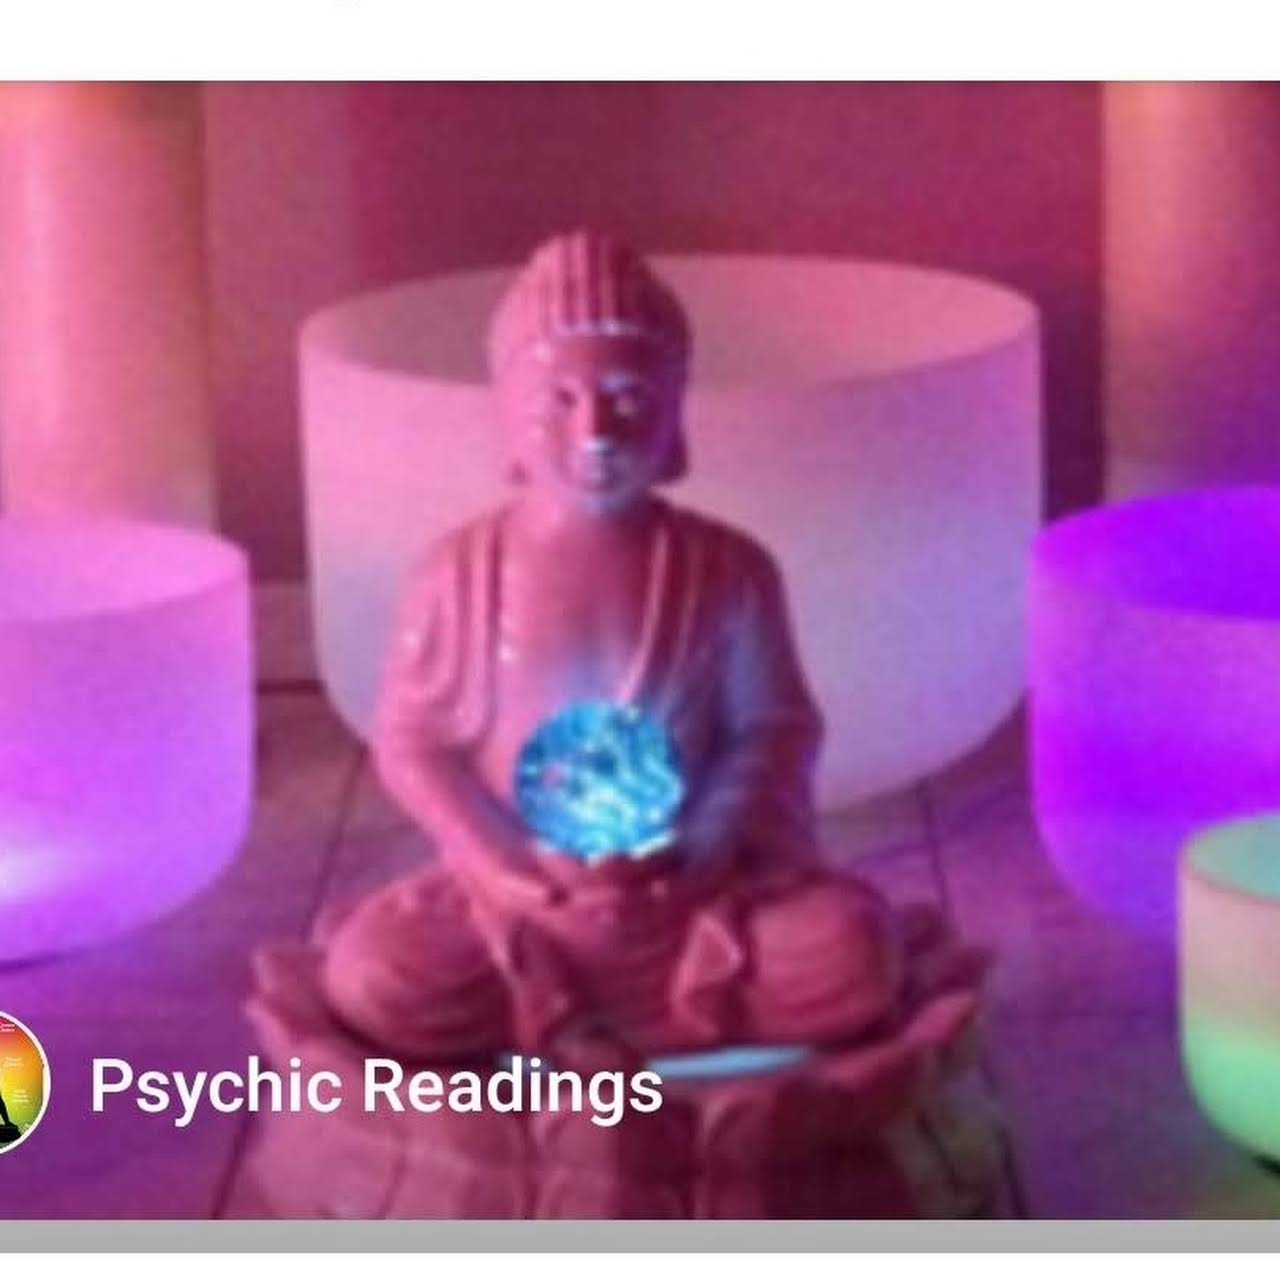 Psychic Readings - miss jennifer specialize in relationships